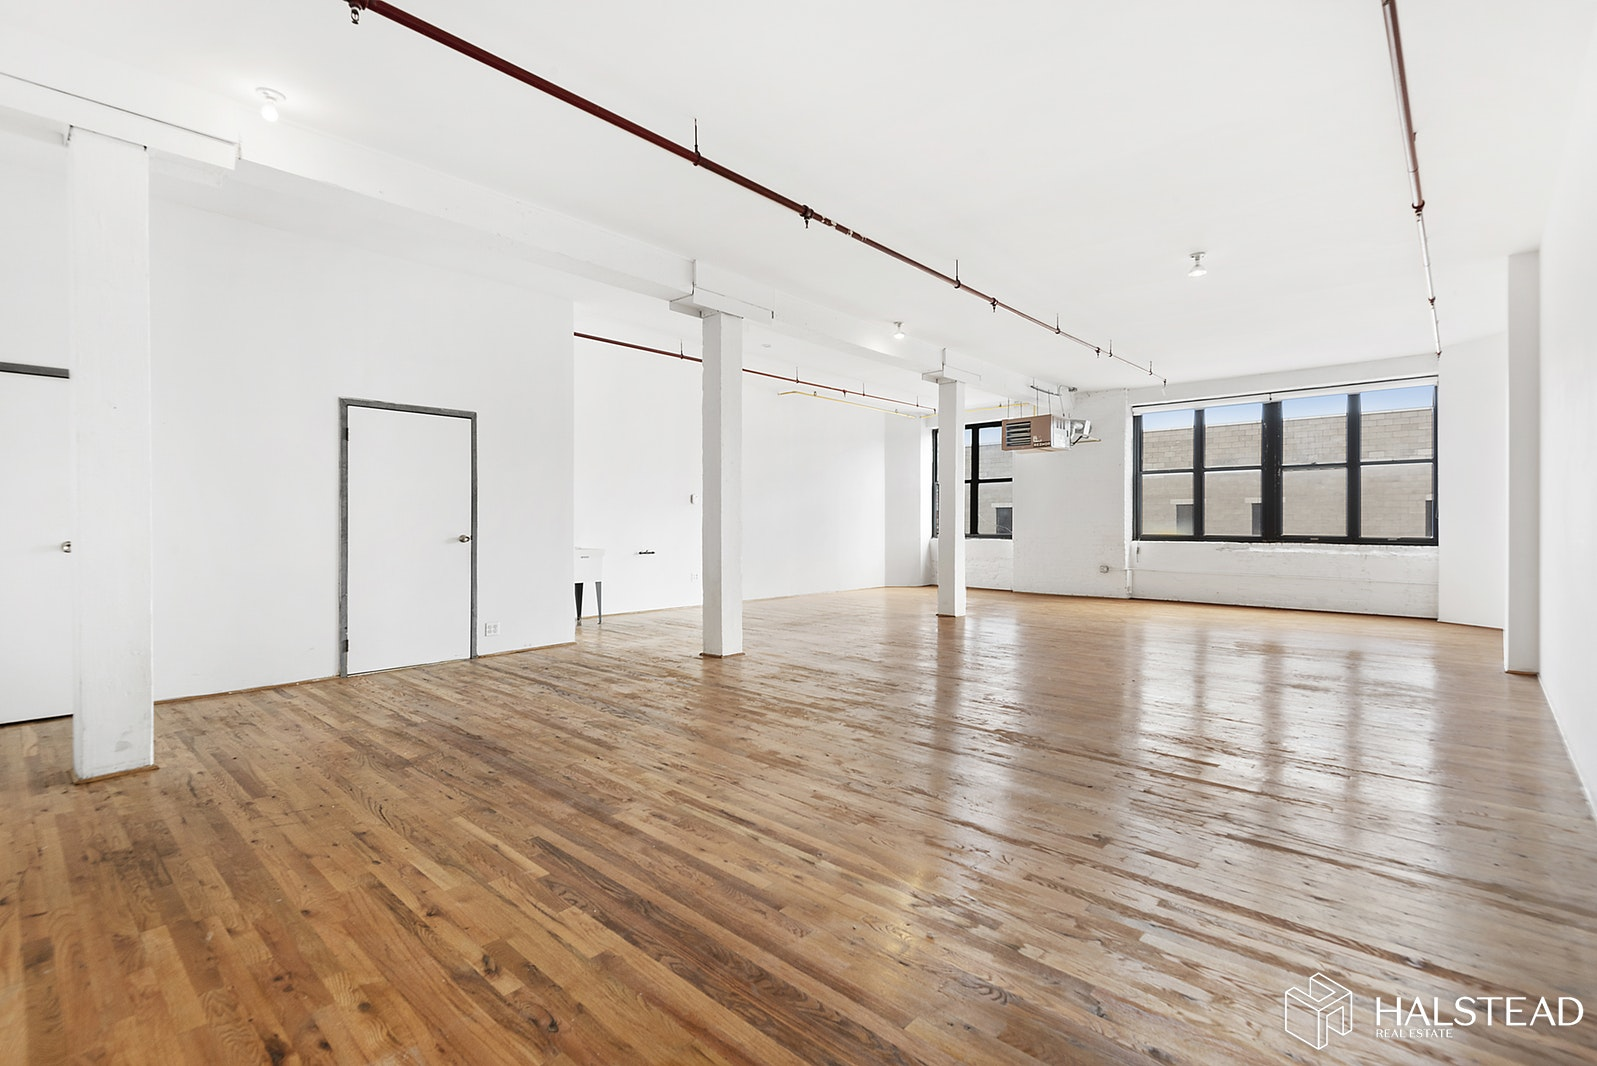 Authentic Williamsburg Loft - LIVE-WORK, East Williamsburg, Brooklyn, NY,  11237, $3,300, For Rent, Halstead Real Estate